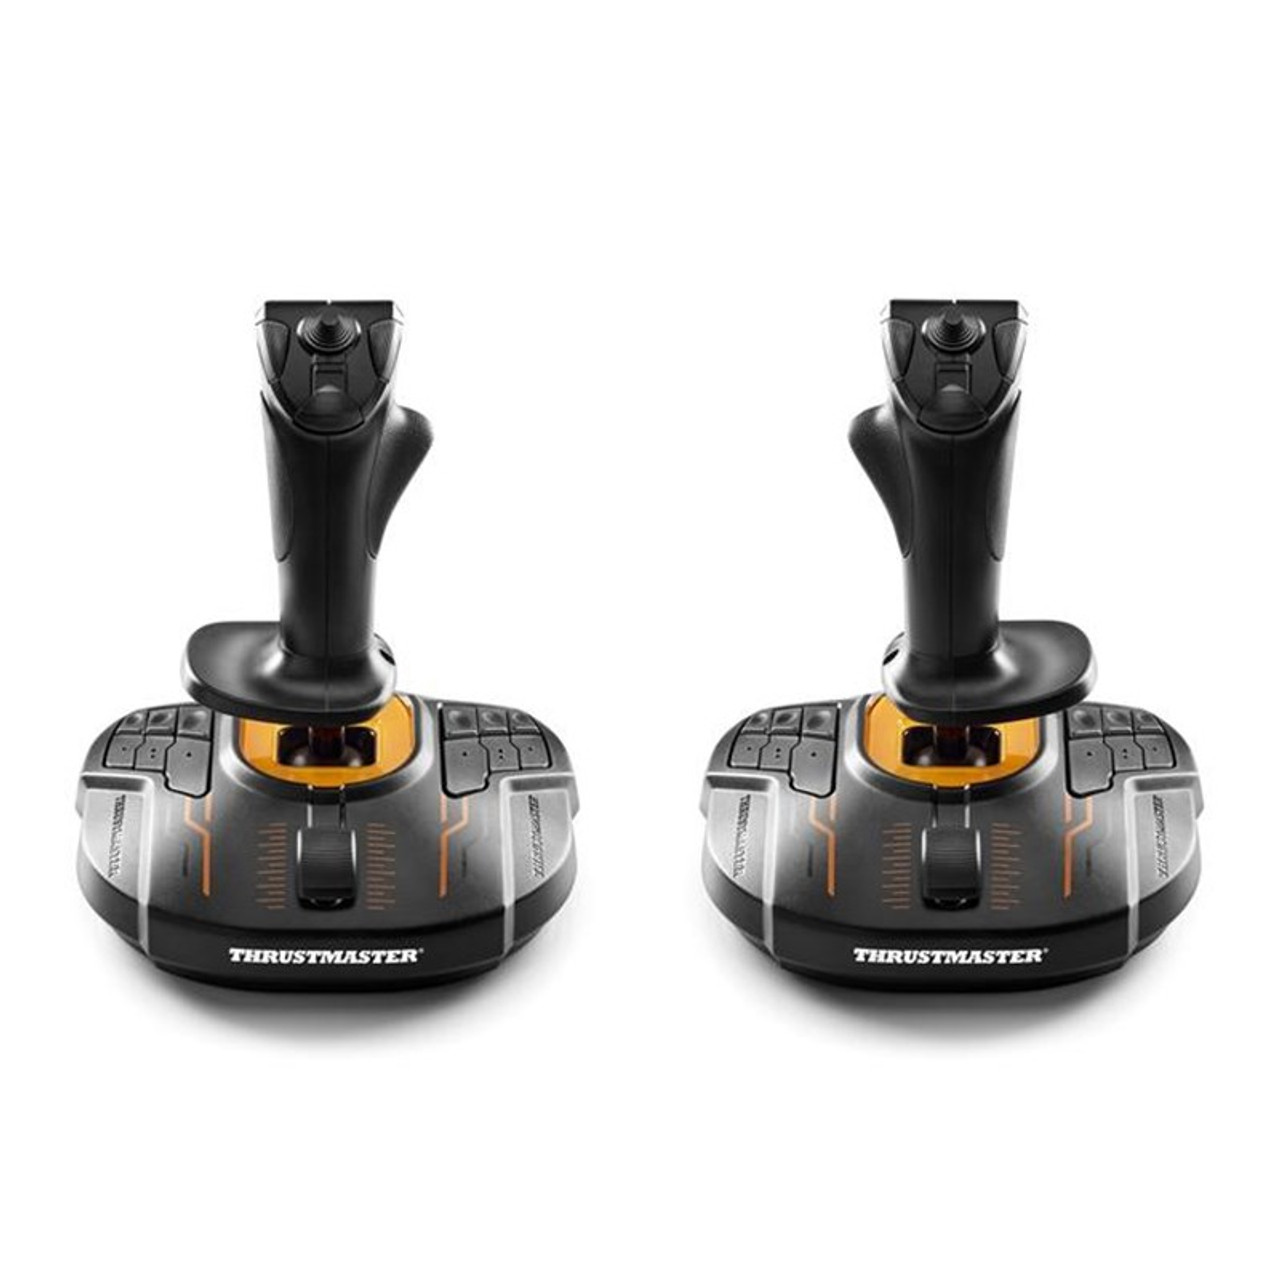 Product image for Thrustmaster Dual T.16000M FCS Joystick Space Sim Pack For PC | CX Computer Superstore